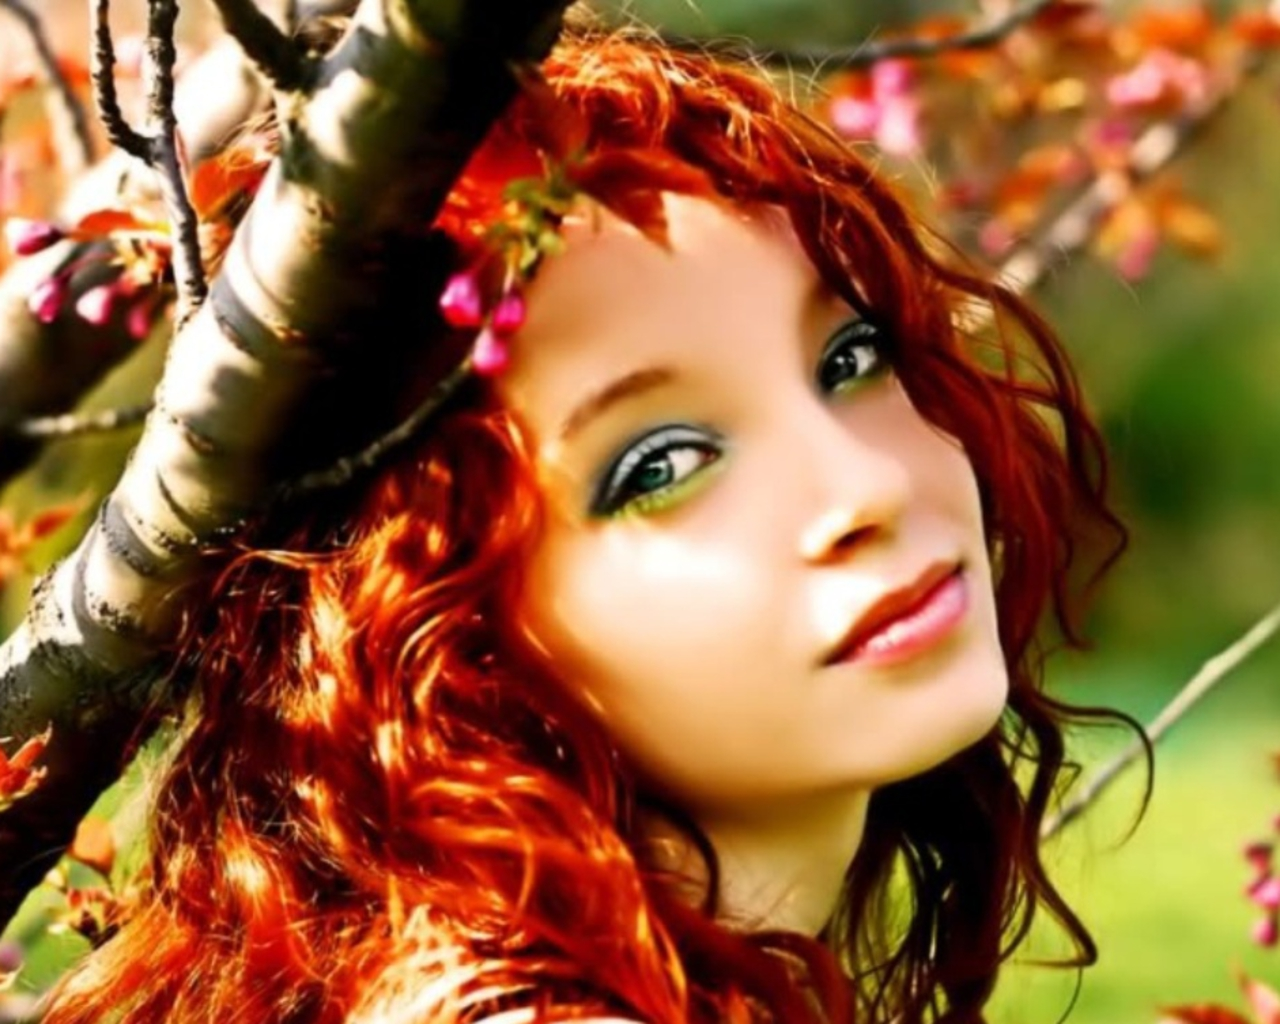 lovely girl wallpaper,hair,people in nature,beauty,hairstyle,leaf